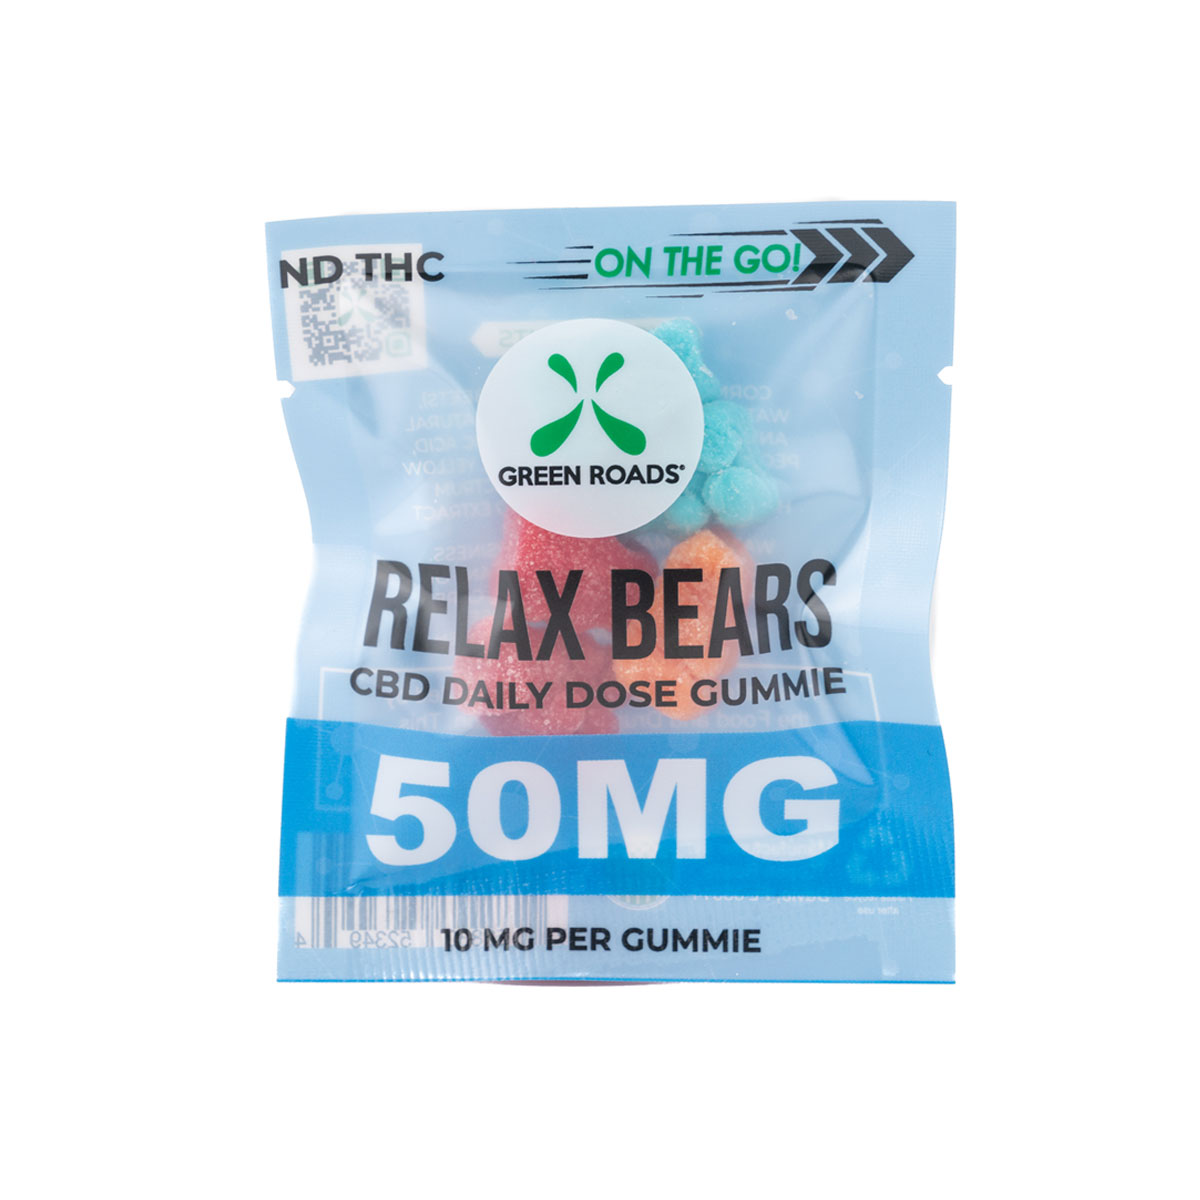 50 MG Relax Bears (2 Doses) $8